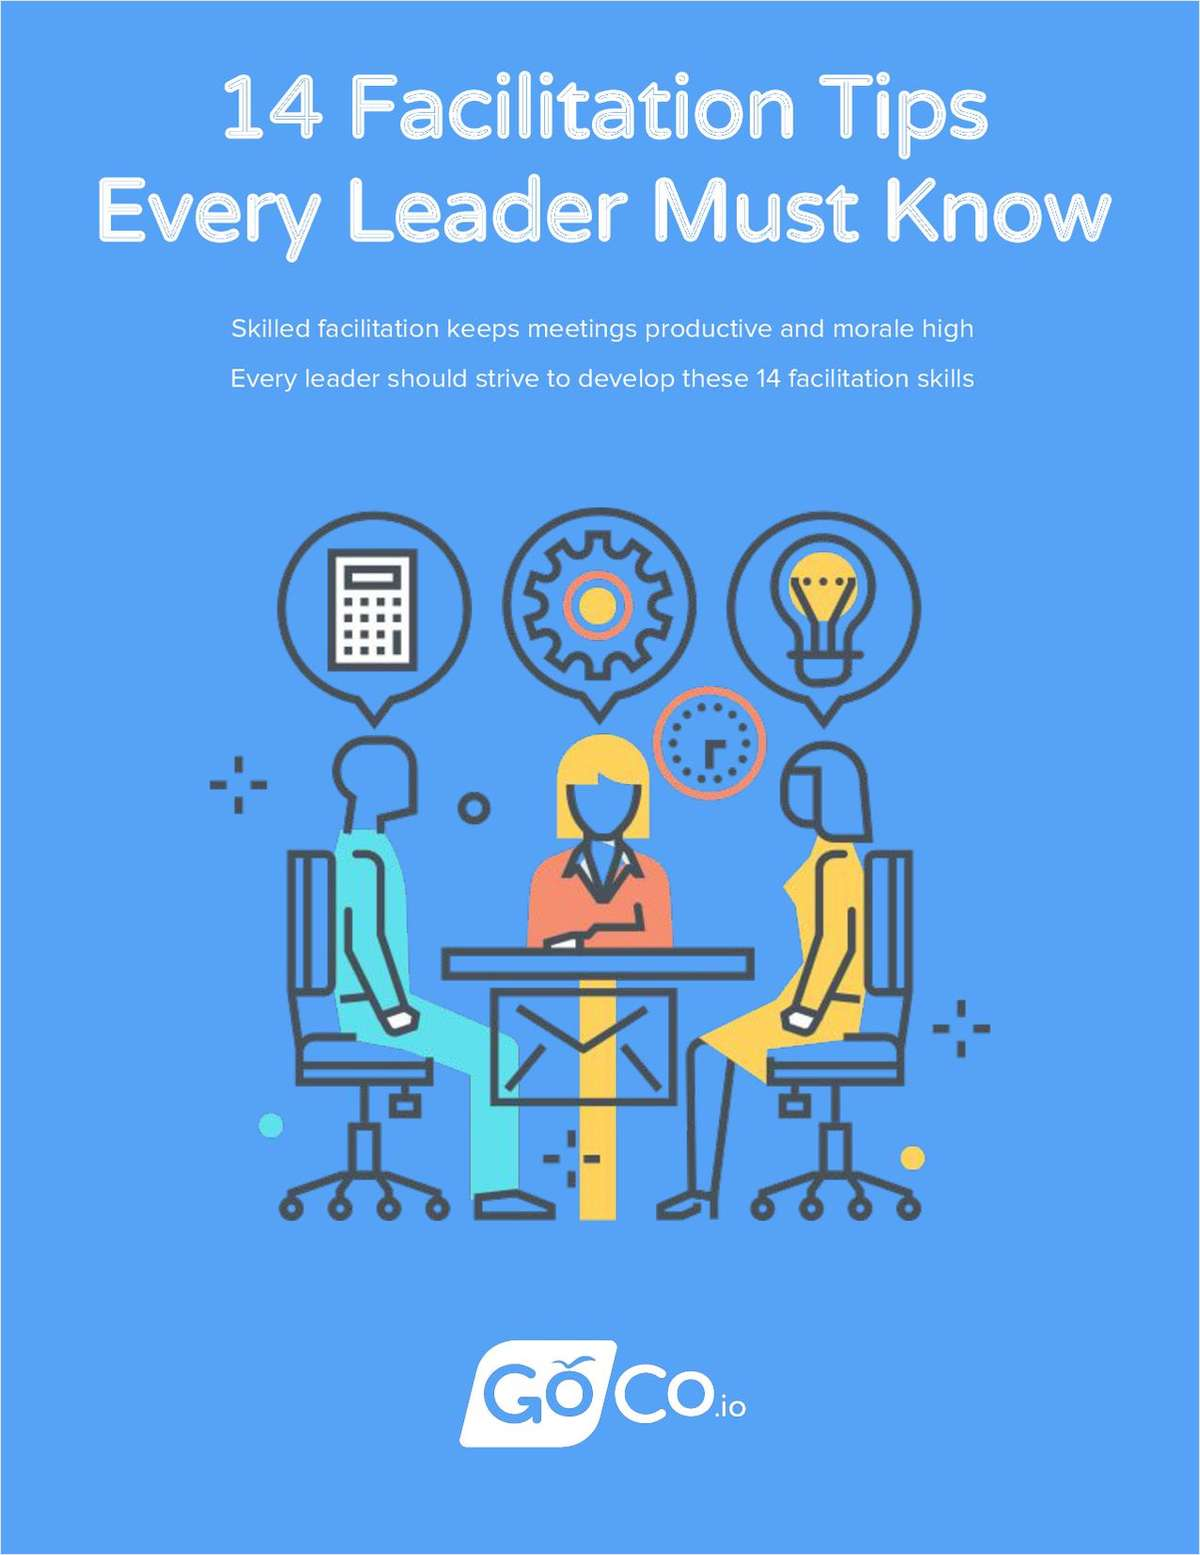 14 Facilitation Tips Every Leader Must Know